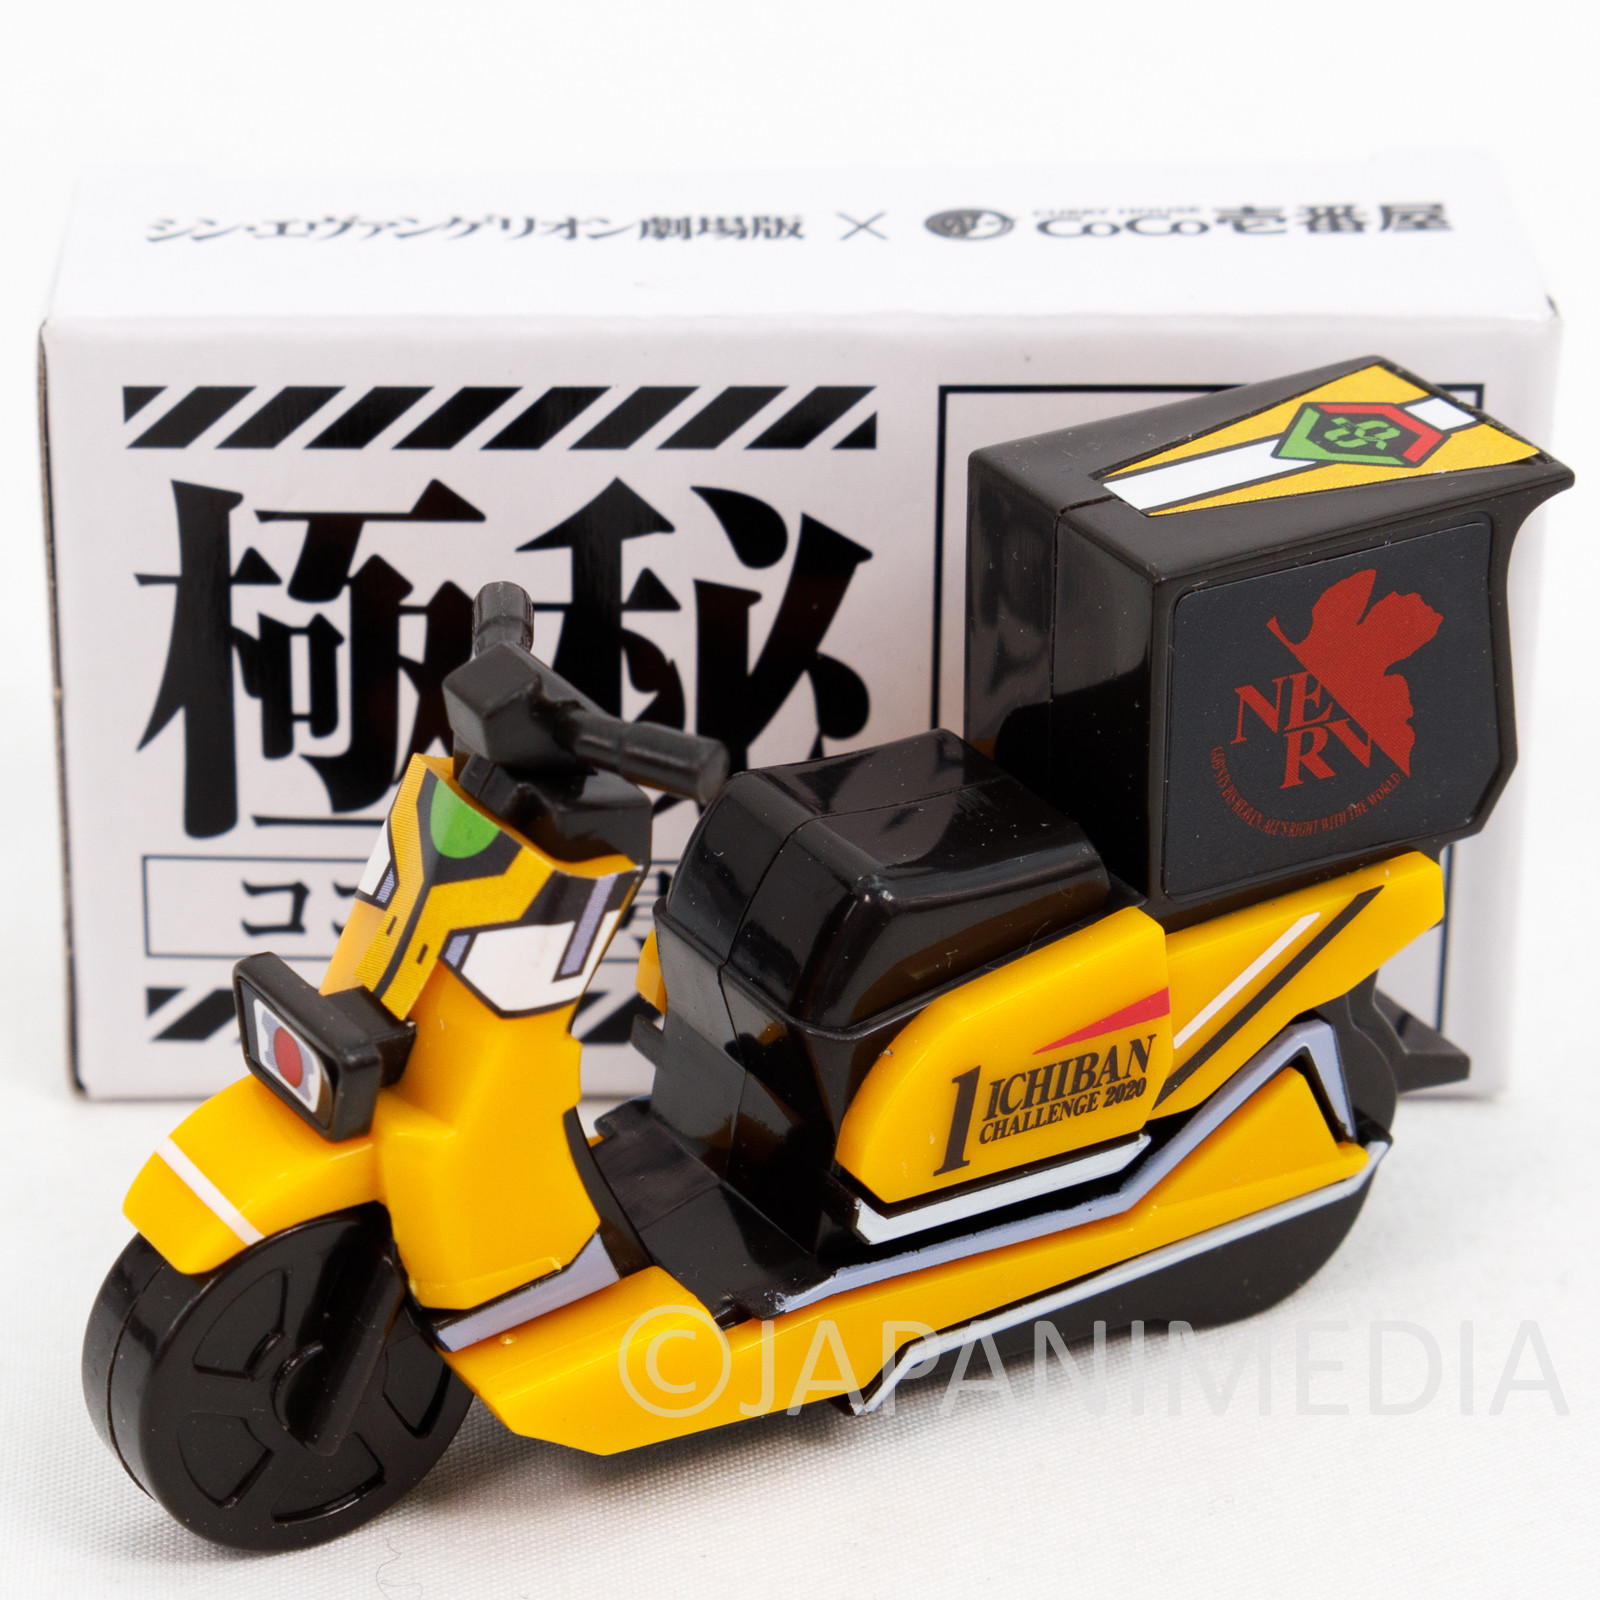 Evangelion x Kokoichi Delivery Bike Figure EVA-00 JAPAN ANIME